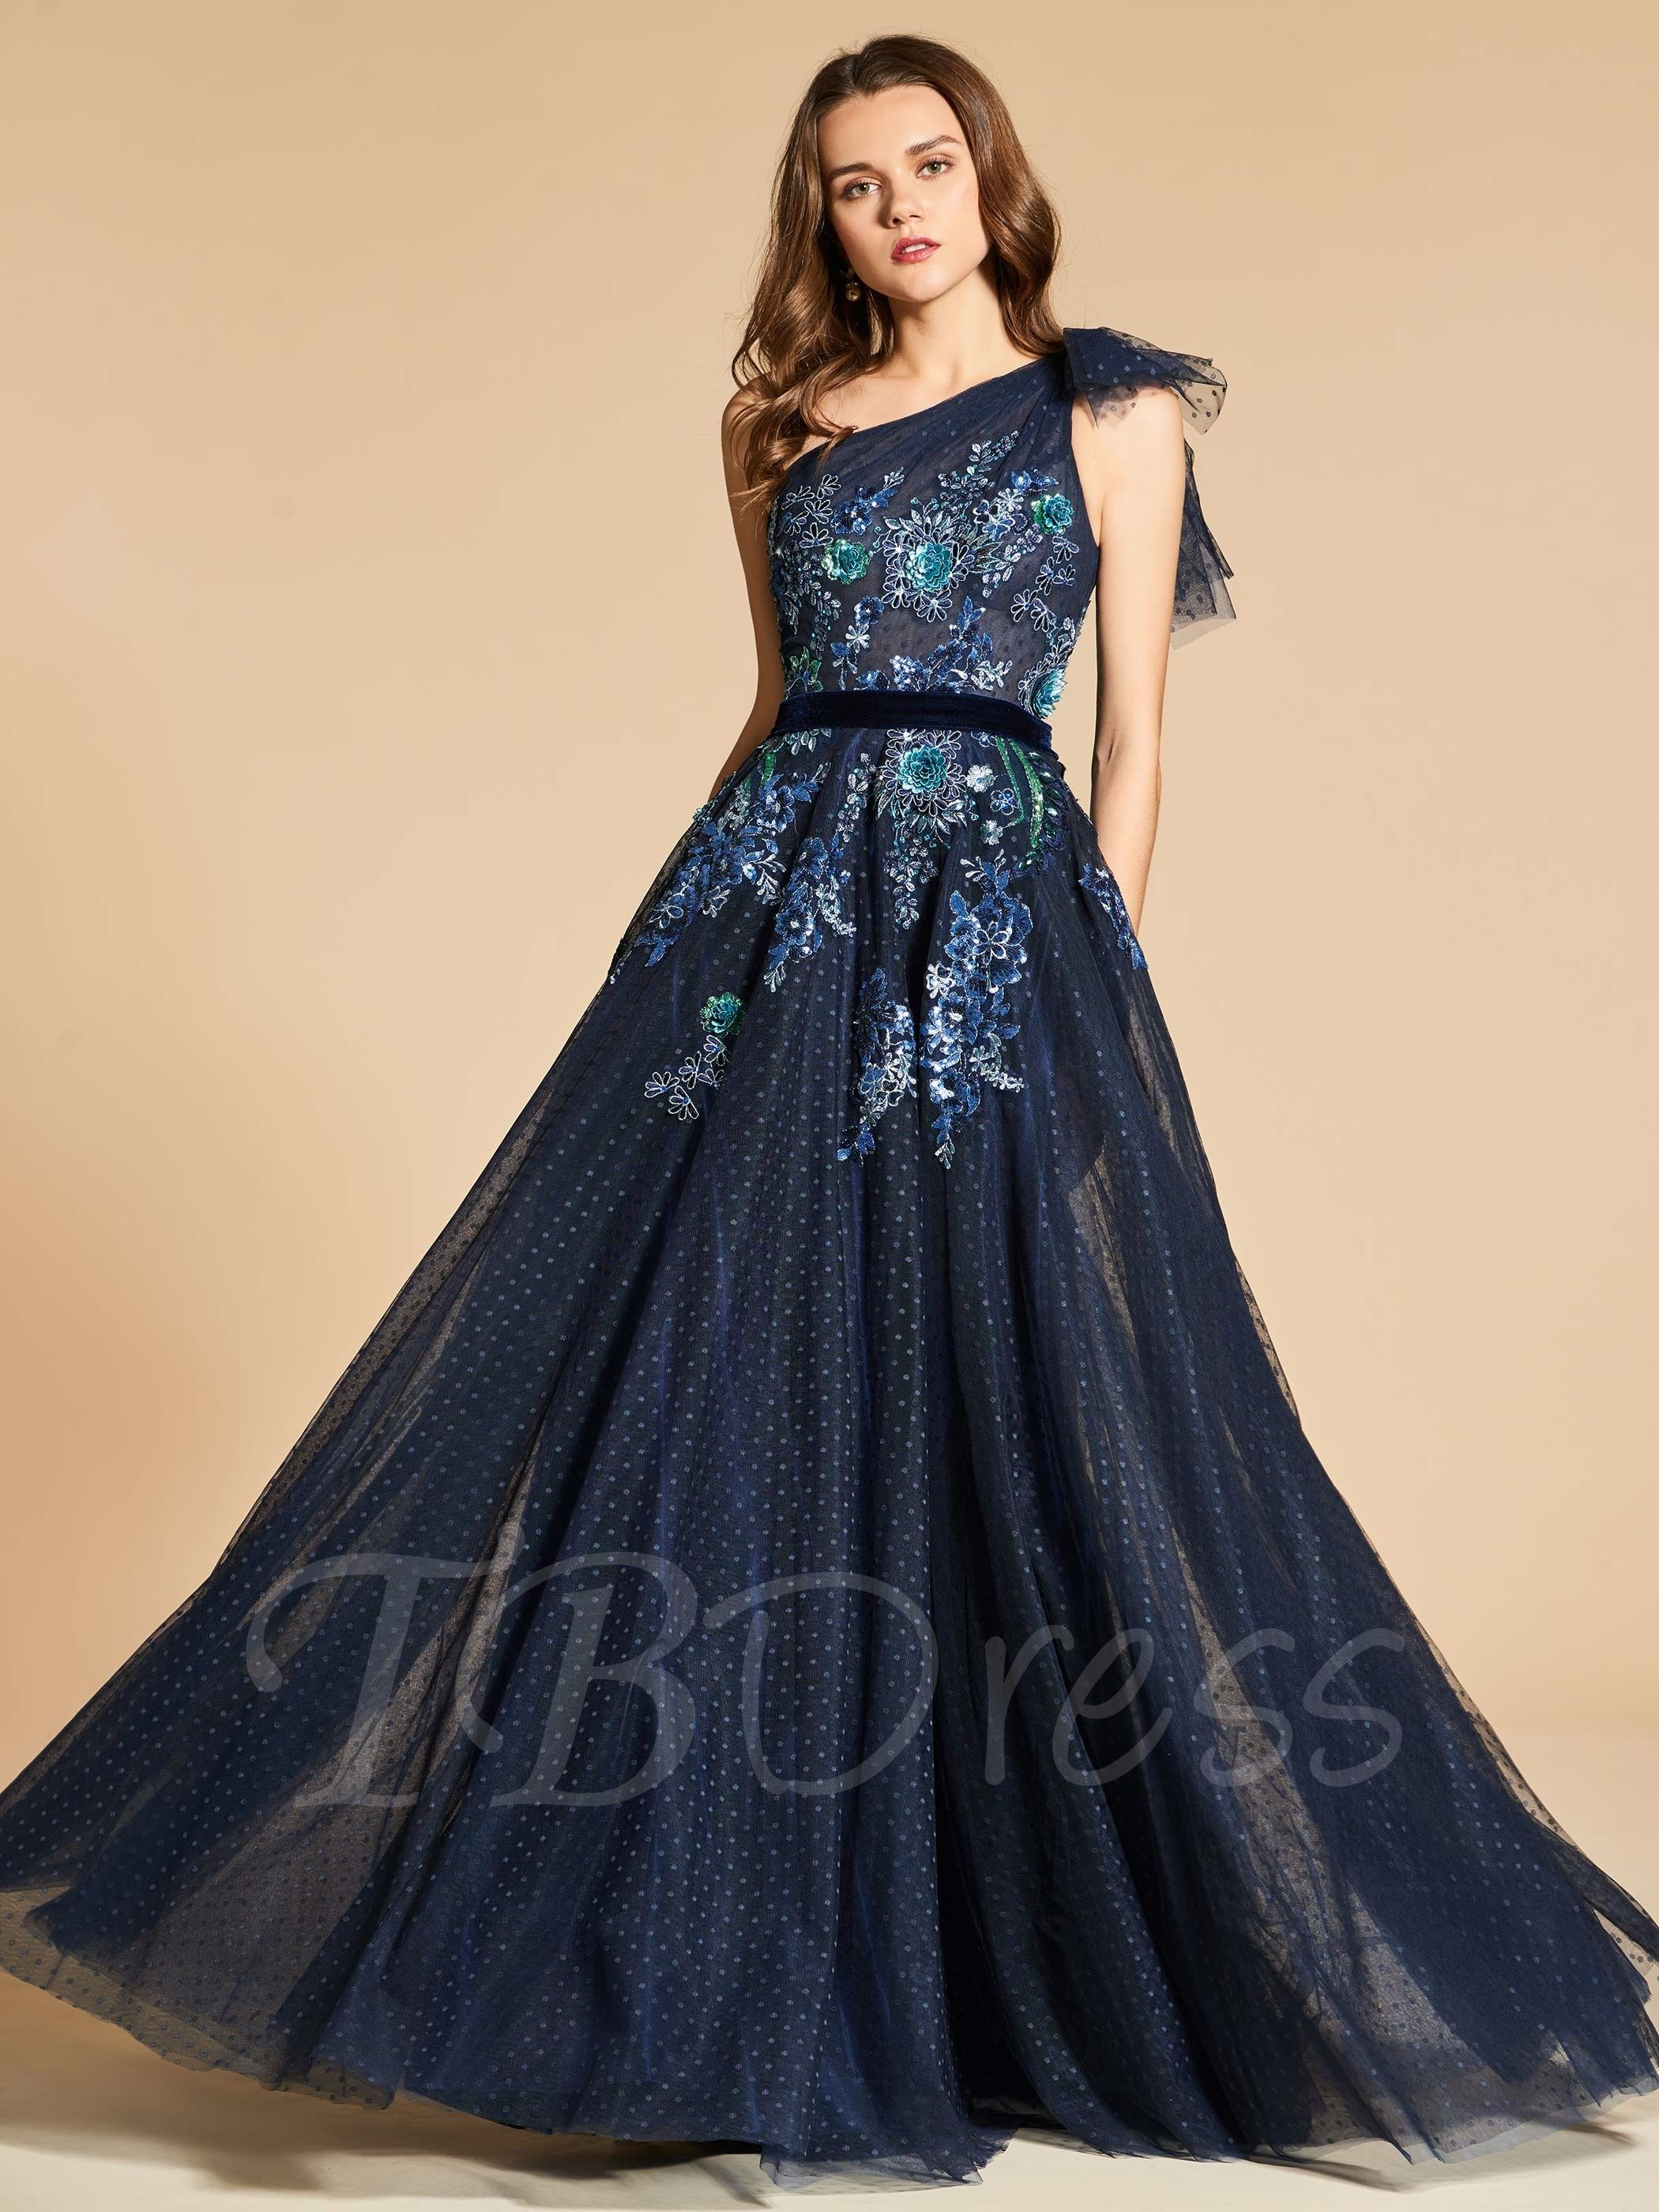 Lace aline oneshoulder floorlength evening dress wedding dress